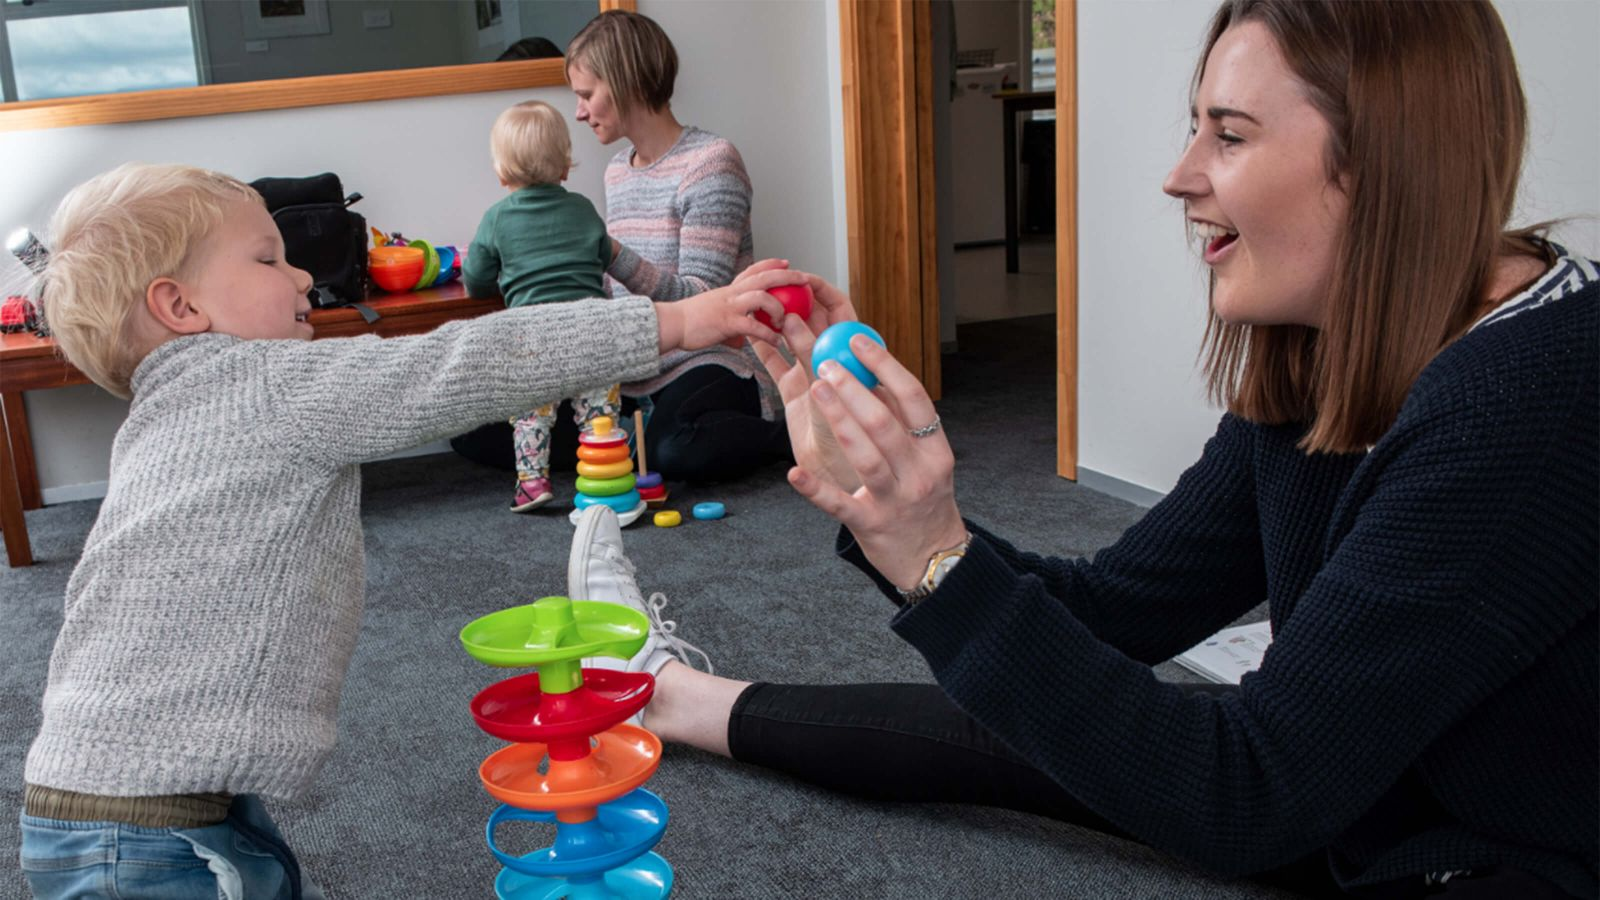 Two women playing with two toddlers and colourful children's toys.